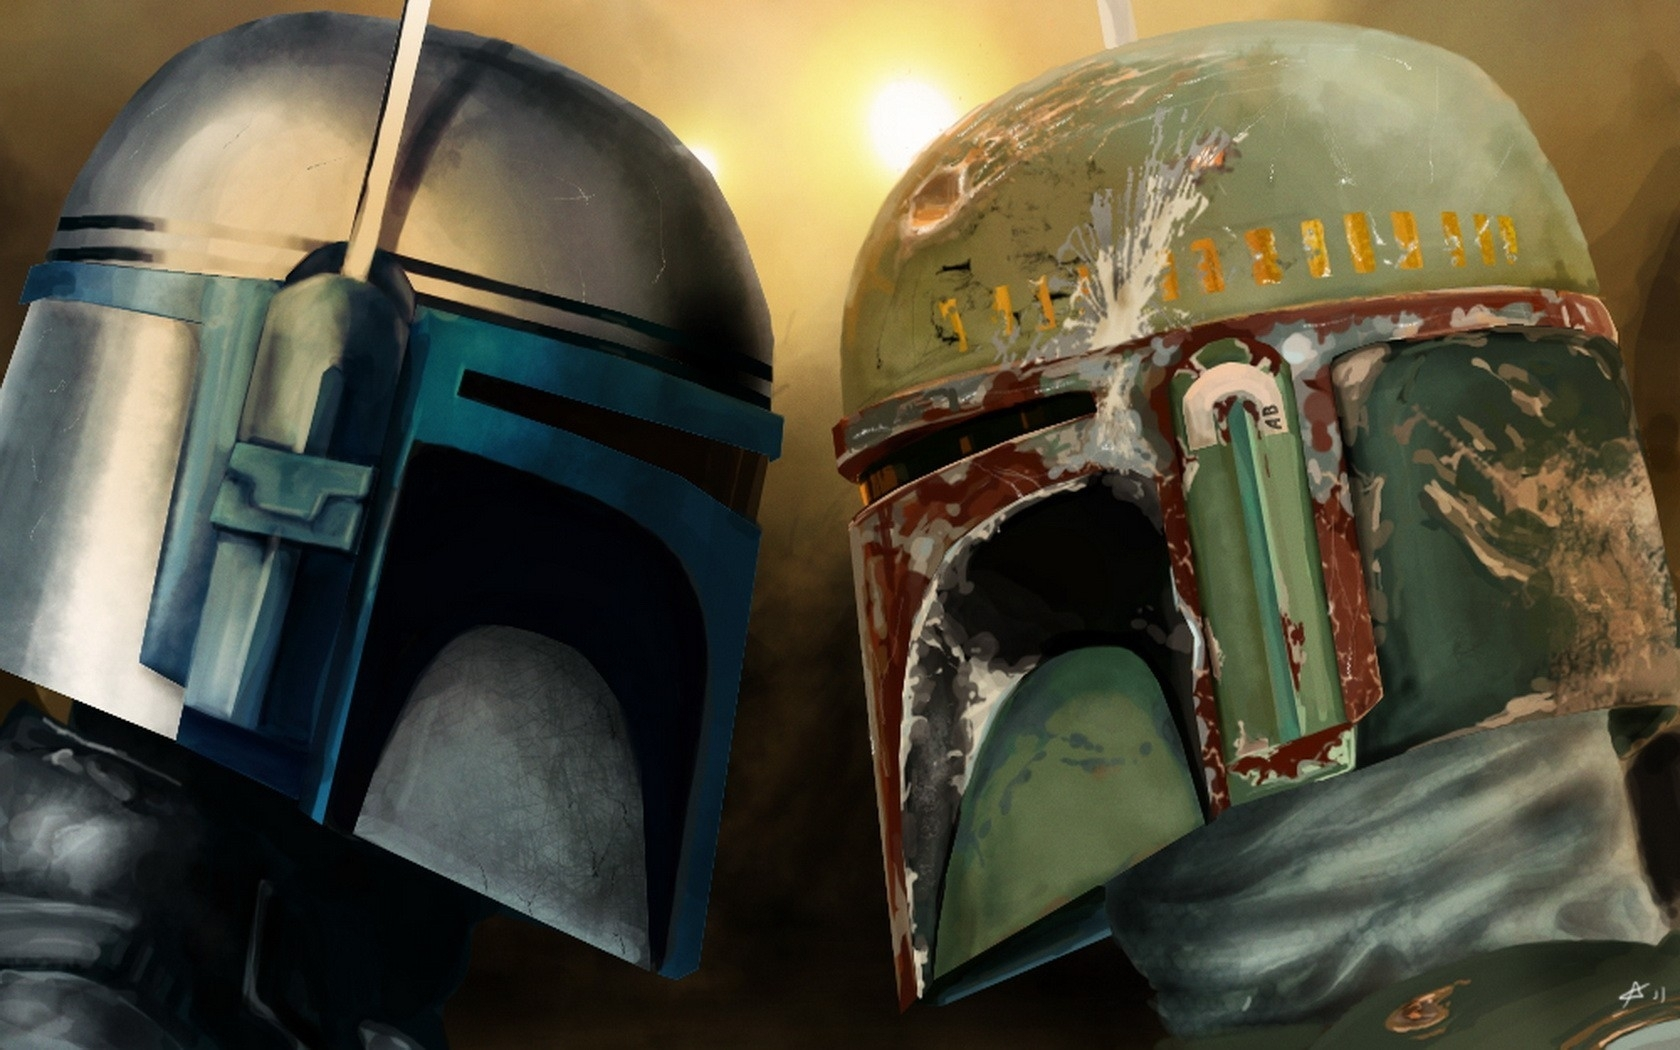 10 New Jango Fett And Boba Fett Wallpaper FULL HD 1920×1080 For PC Background